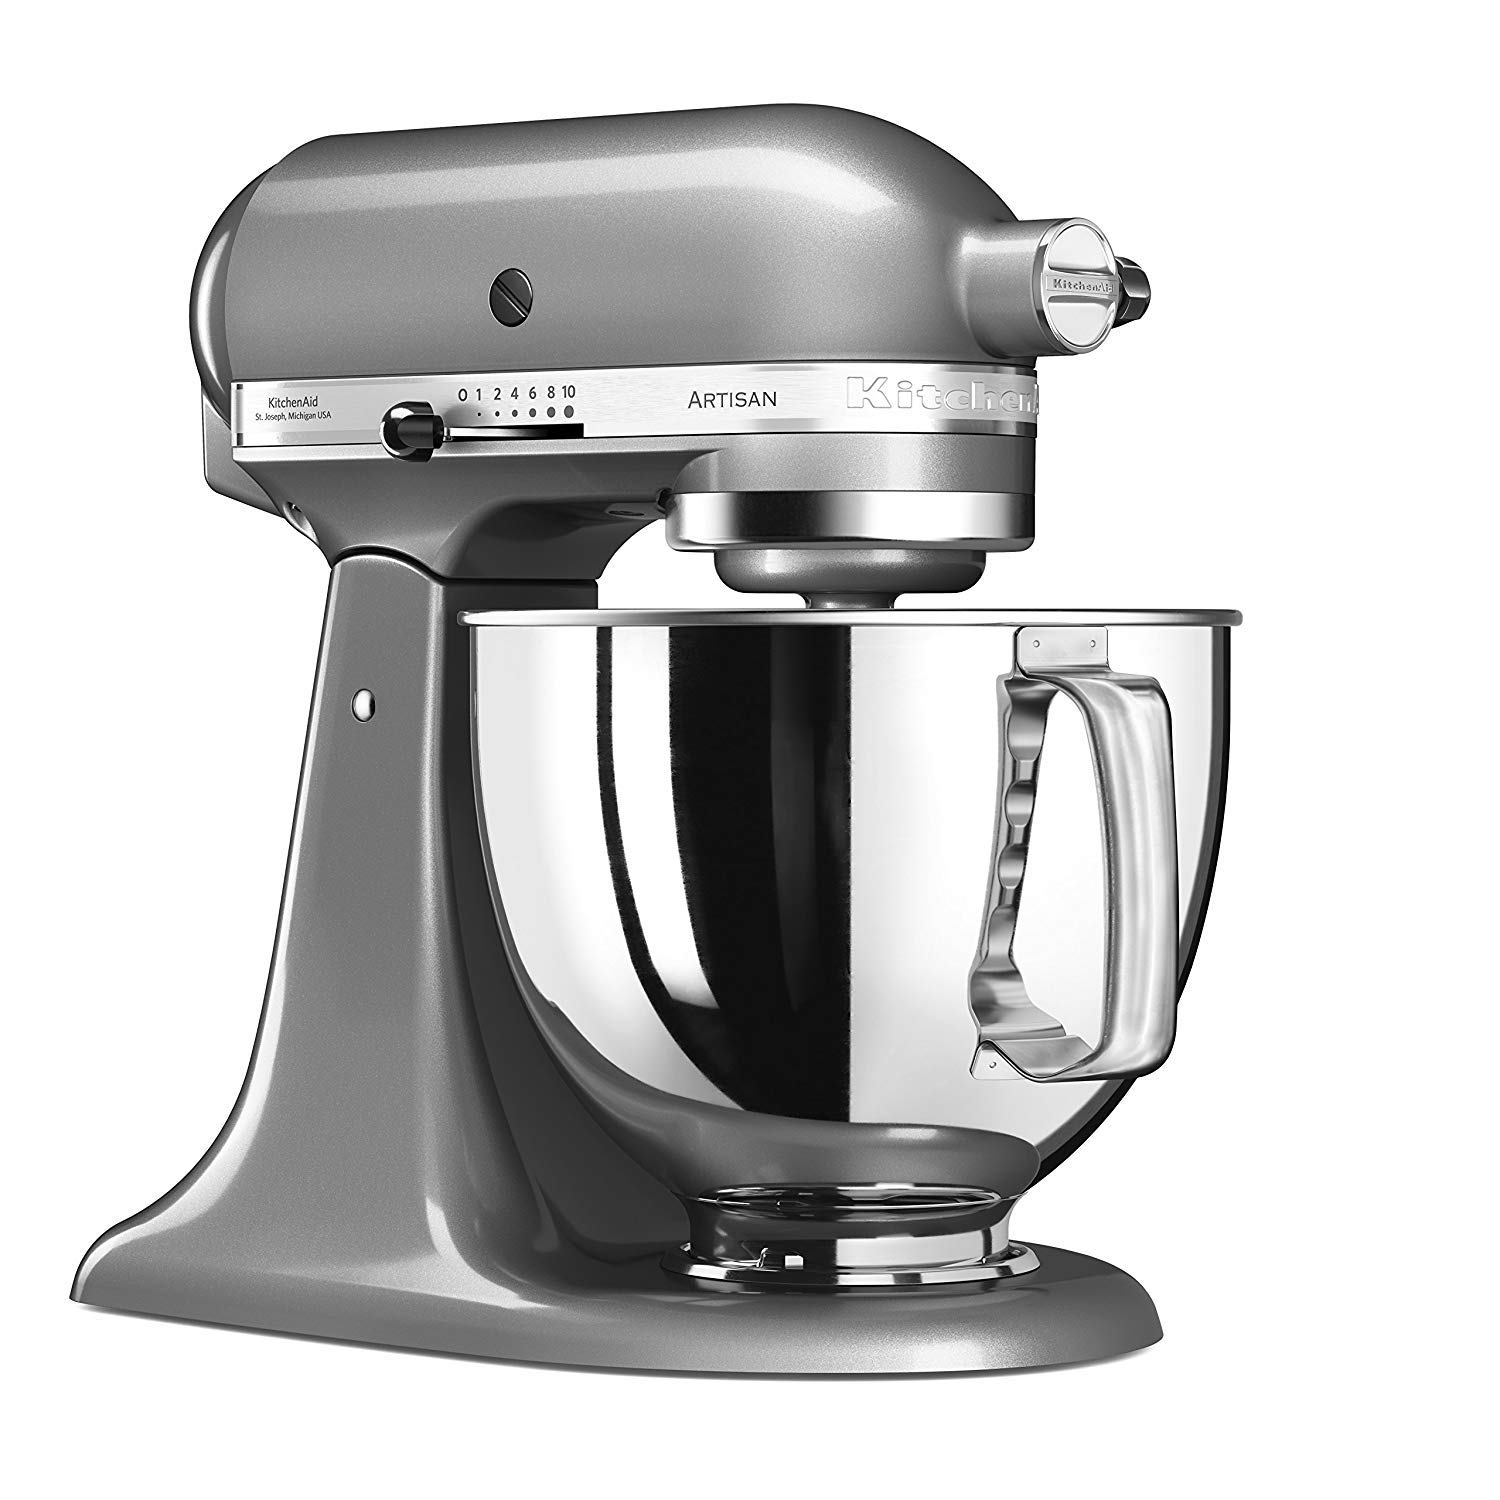 KitchenAid 5KSM125ECU Stand Mixer, 5-Qt, Silver Medallion, 220 Volts (Not for USA - European Cord)